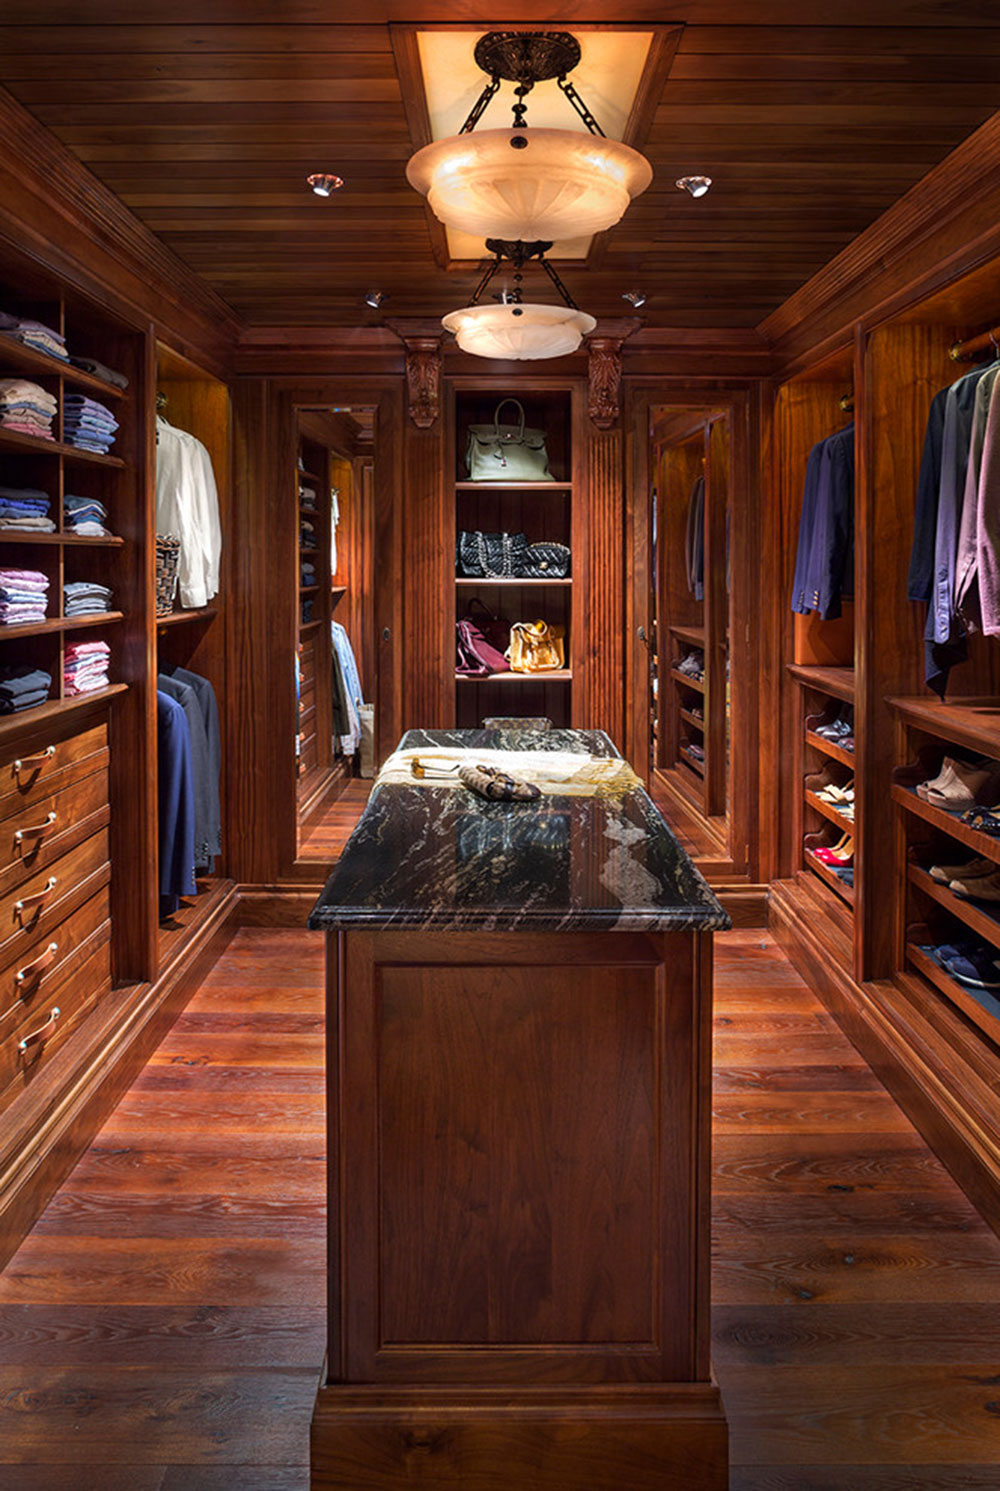 wc14 Cool ideas for walk-in closets that you should have in your home